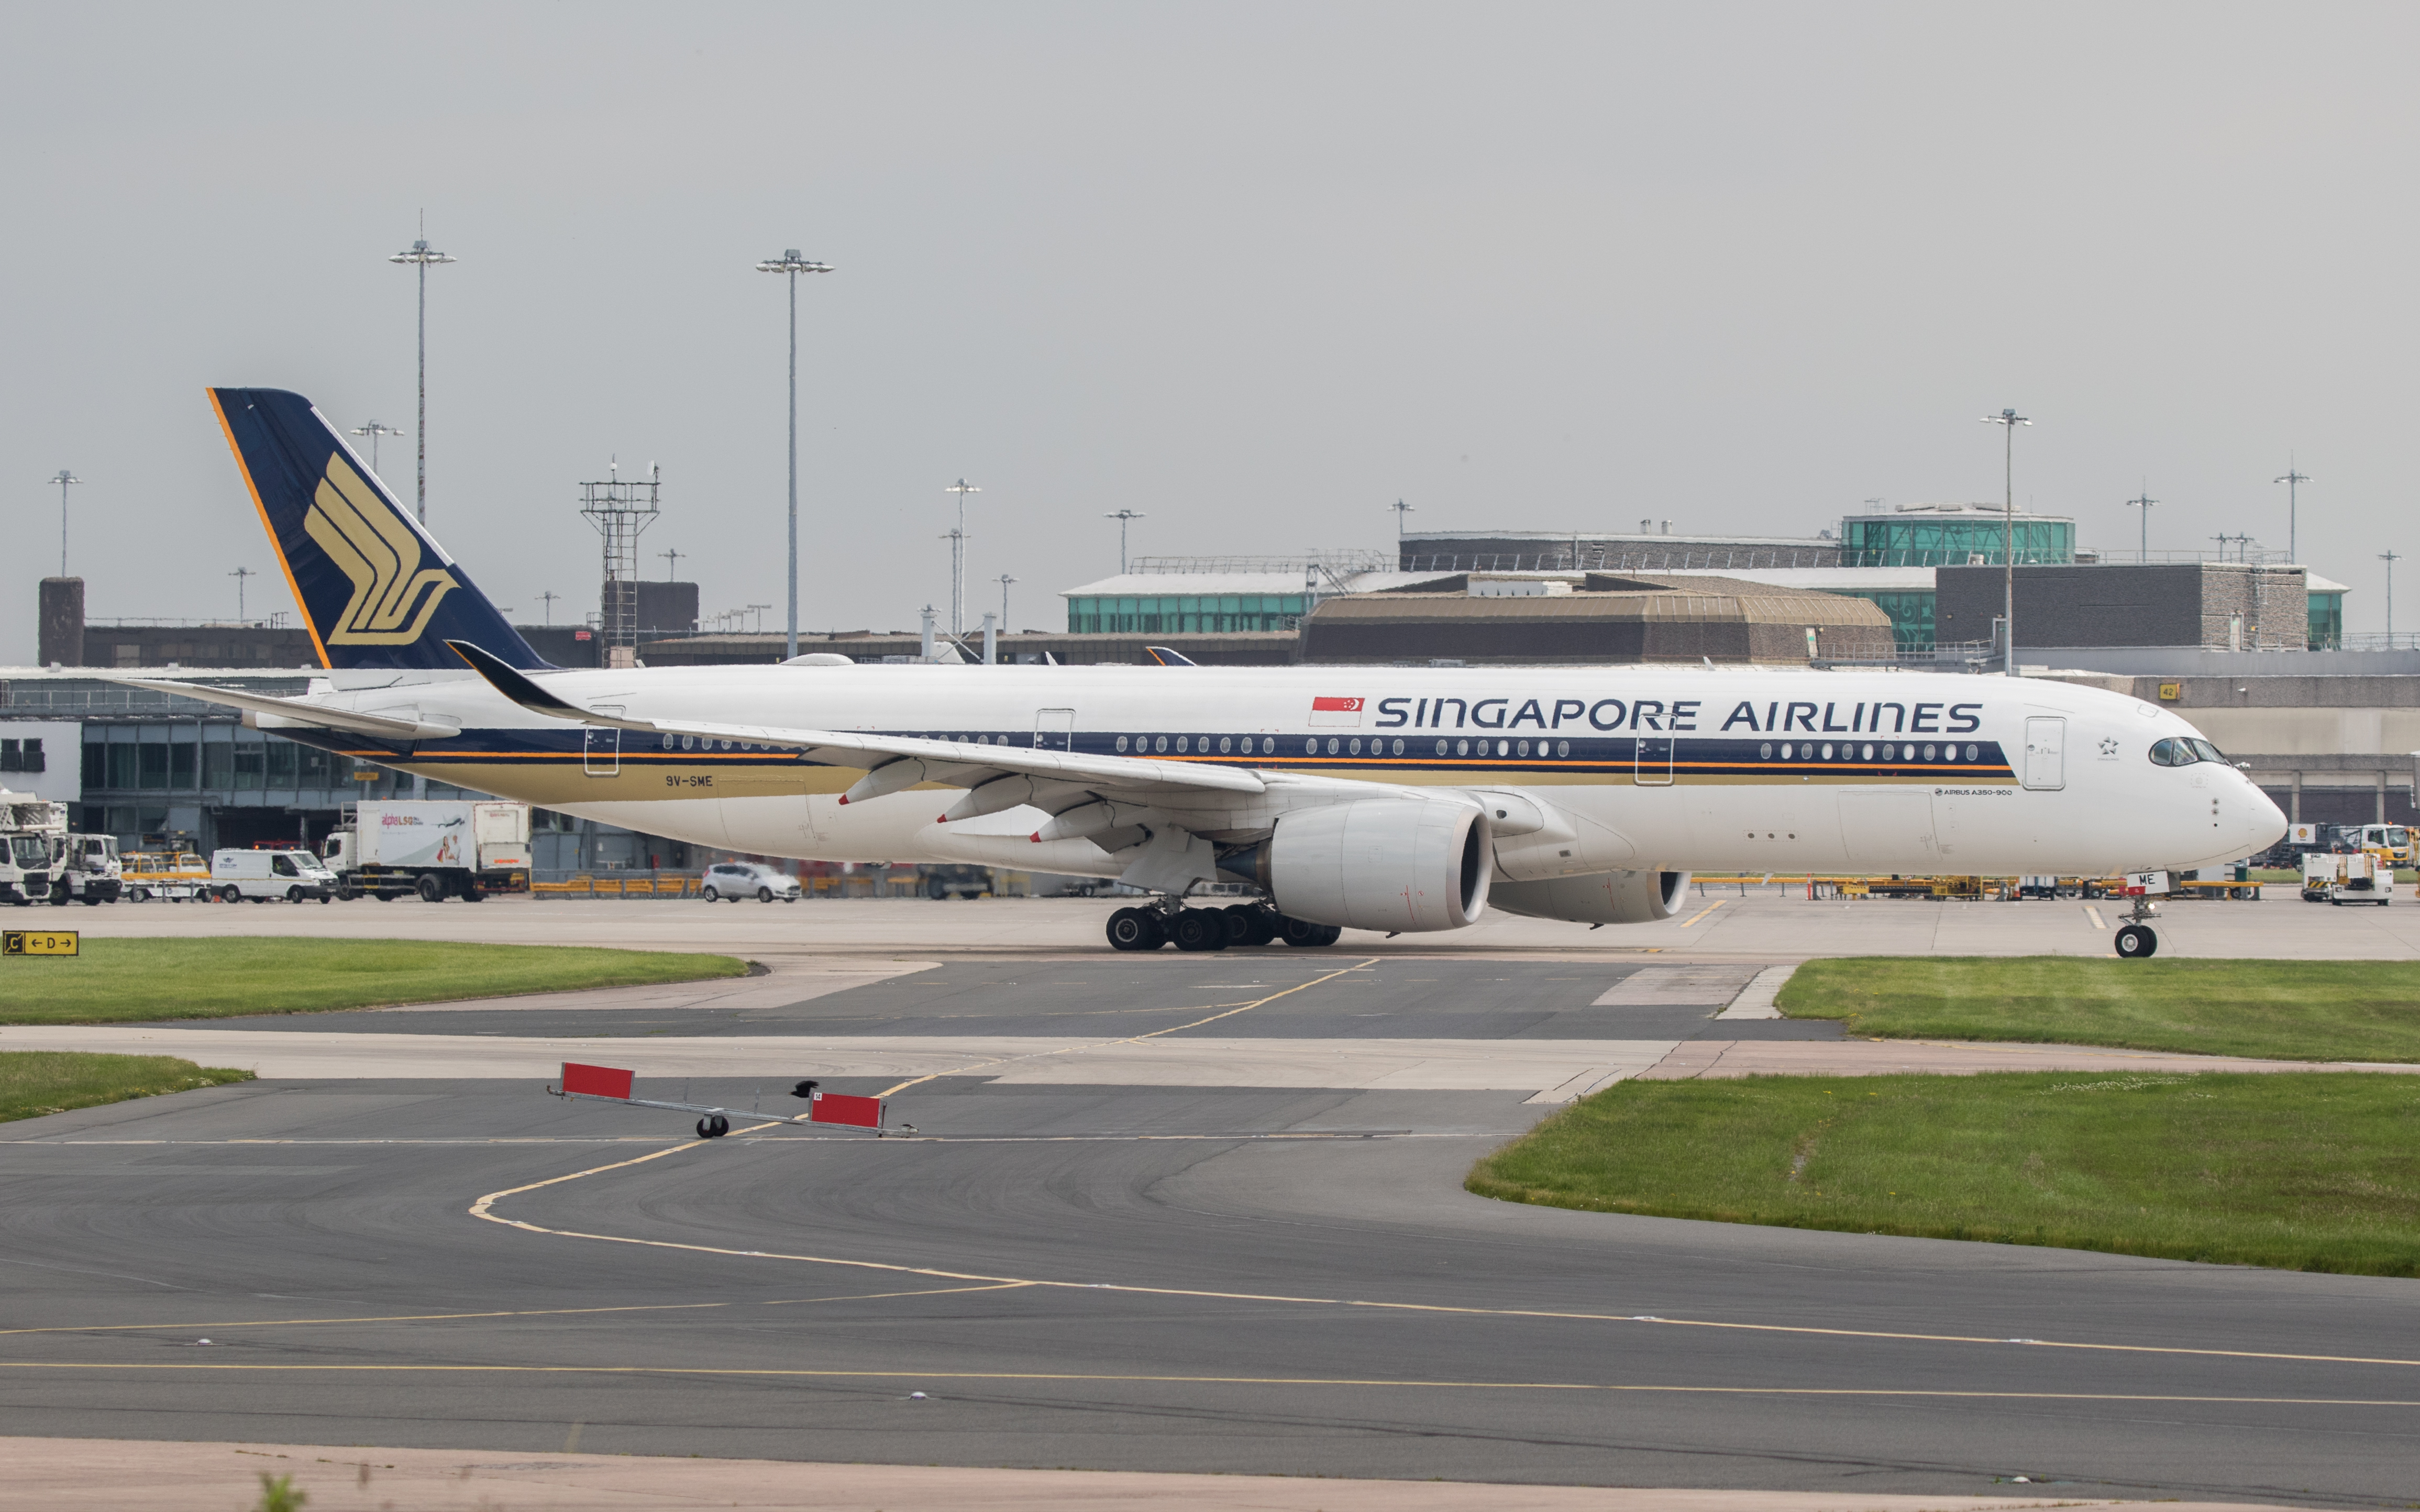 File:Singapore Airlines A350-941 (9V-SME) taxiing at